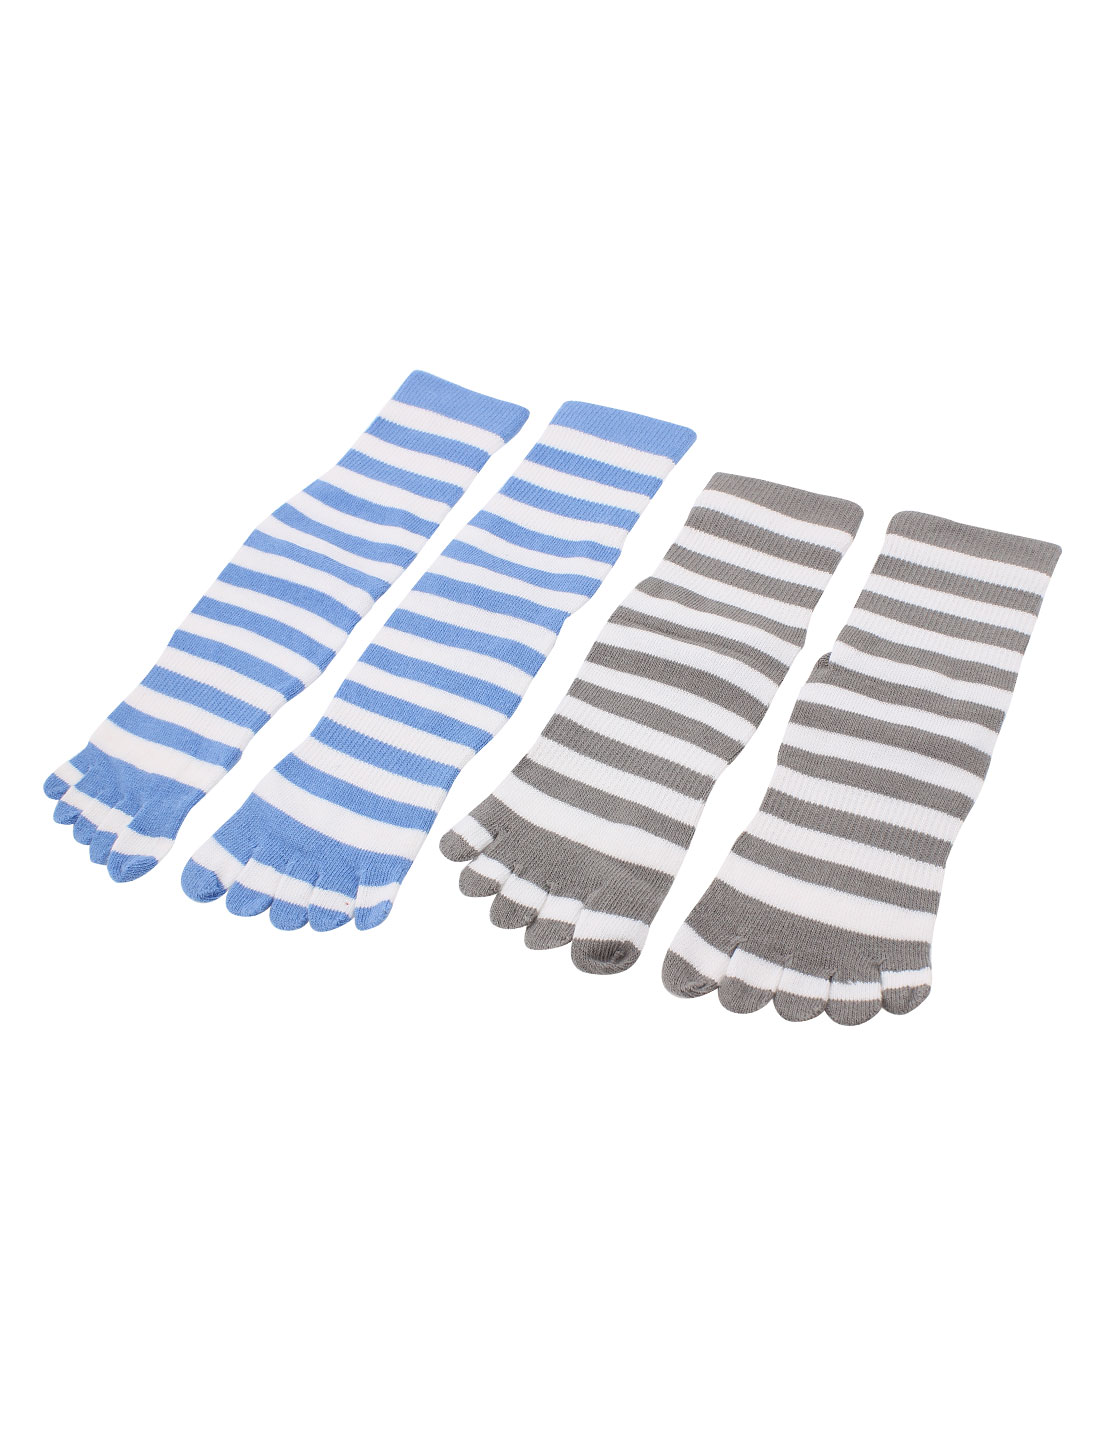 2Pairs Stripes Print Elastic Seperate Full Toe Anckle High Socks Sockens Gray Blue for Lady